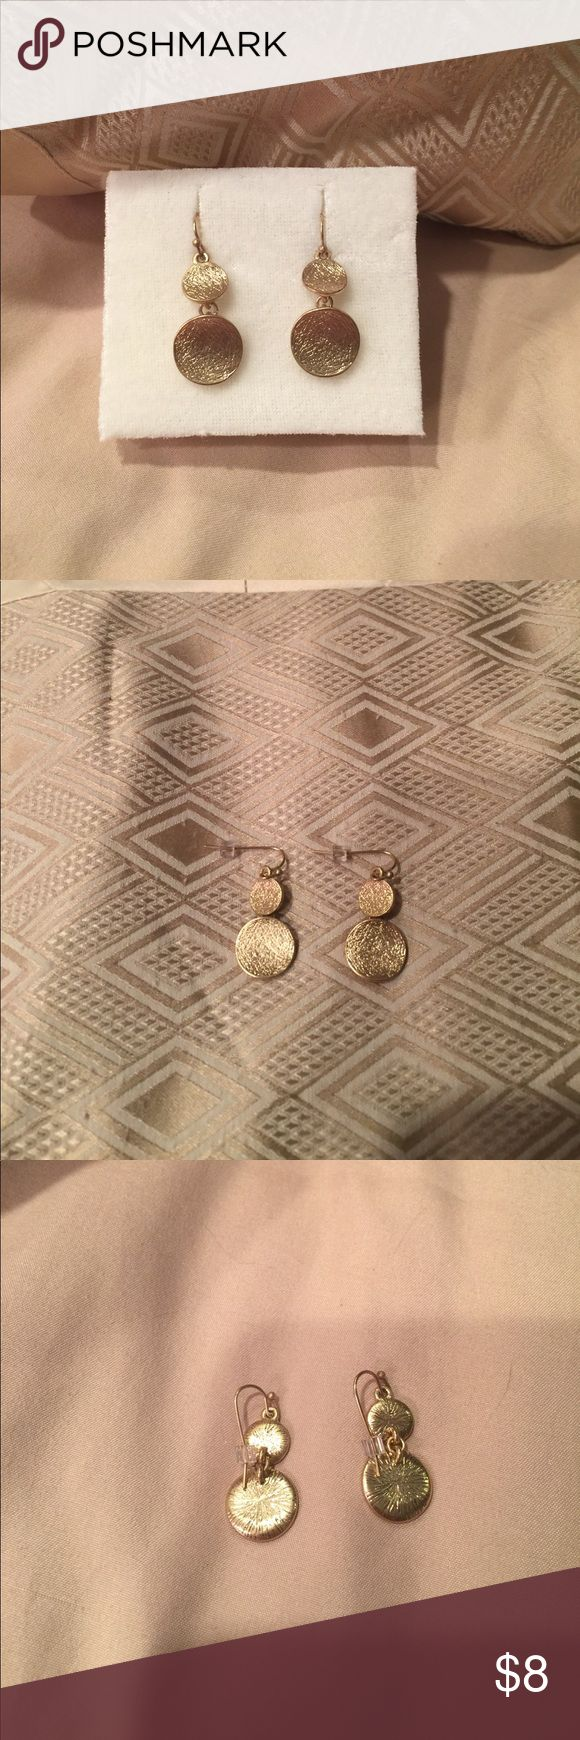 """🆕 Brushed Gold 2 Disc Wire Pierced Earrings 🆕 Brushed Gold 2 Disc Wire Pierced Earrings. Approx 1 1/2"""" dangle earring. Arrives double boxed Please ask questions if needed Alfani Jewelry Earrings"""